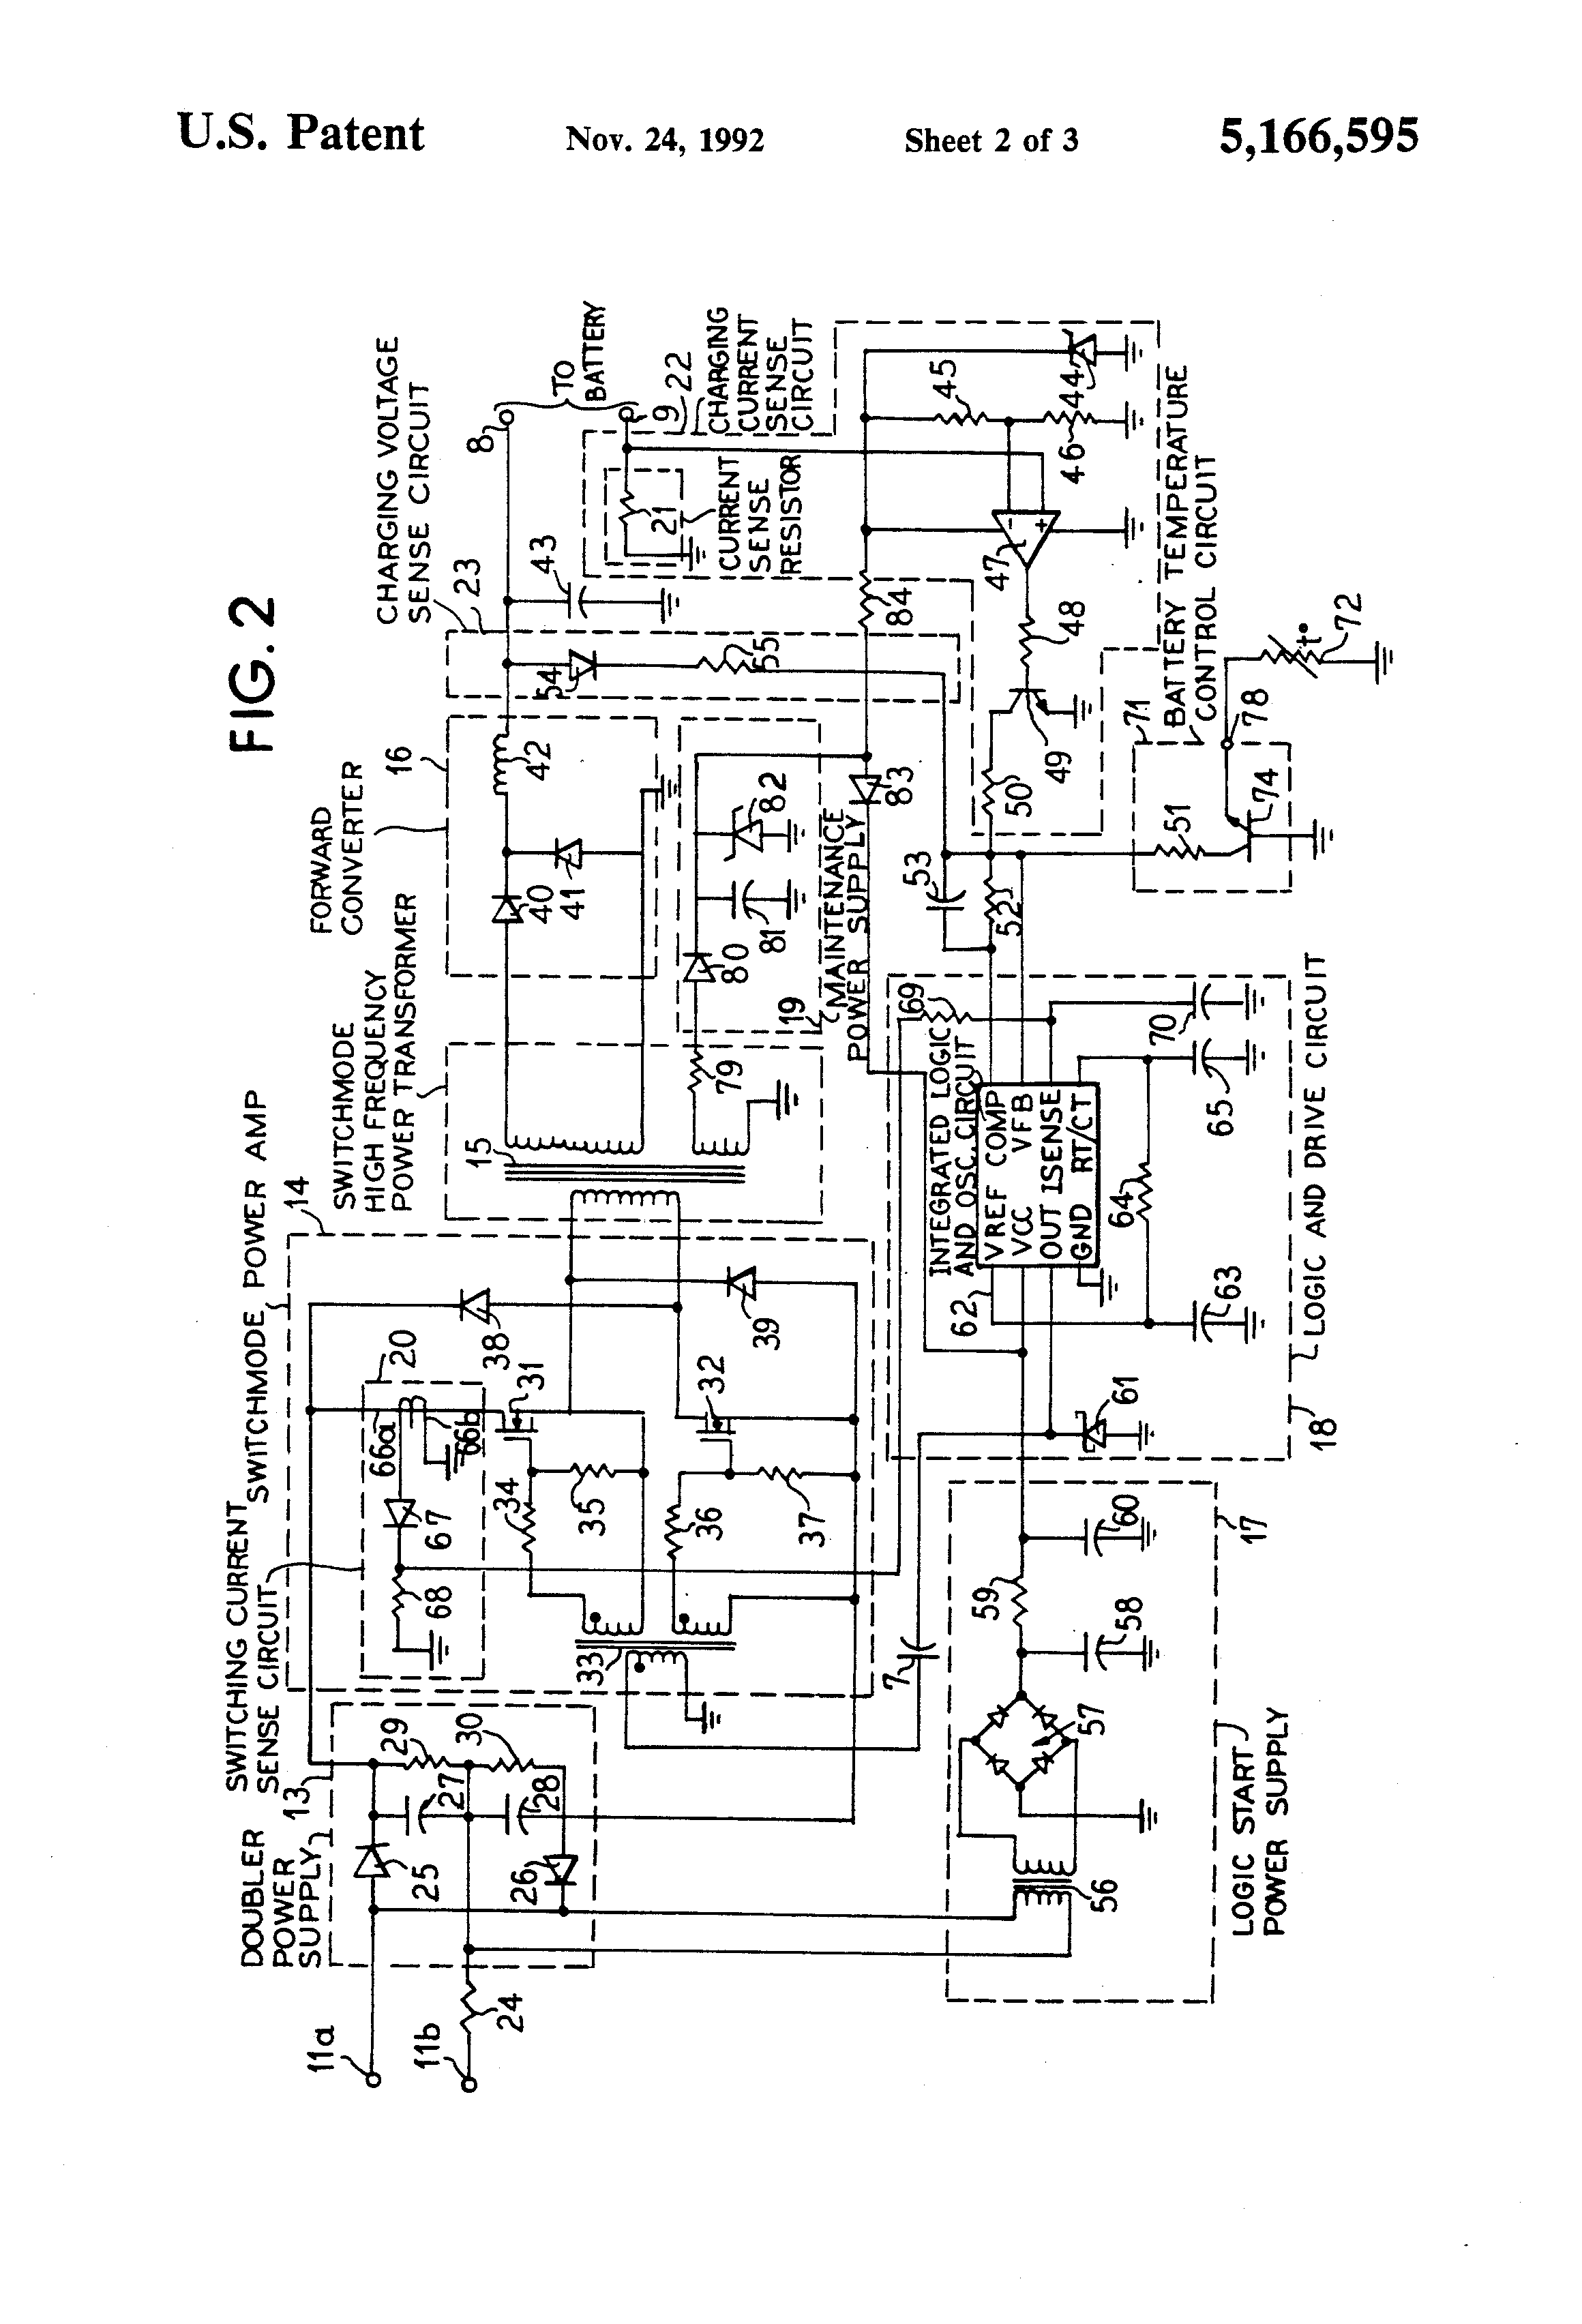 Draw The Wiring Diagram For Charging Of A Lead Battery 54 Simple Nicad Charger Circuit By Little Part Eleccircuit Us5166595 2 Patent Switch Mode System Google